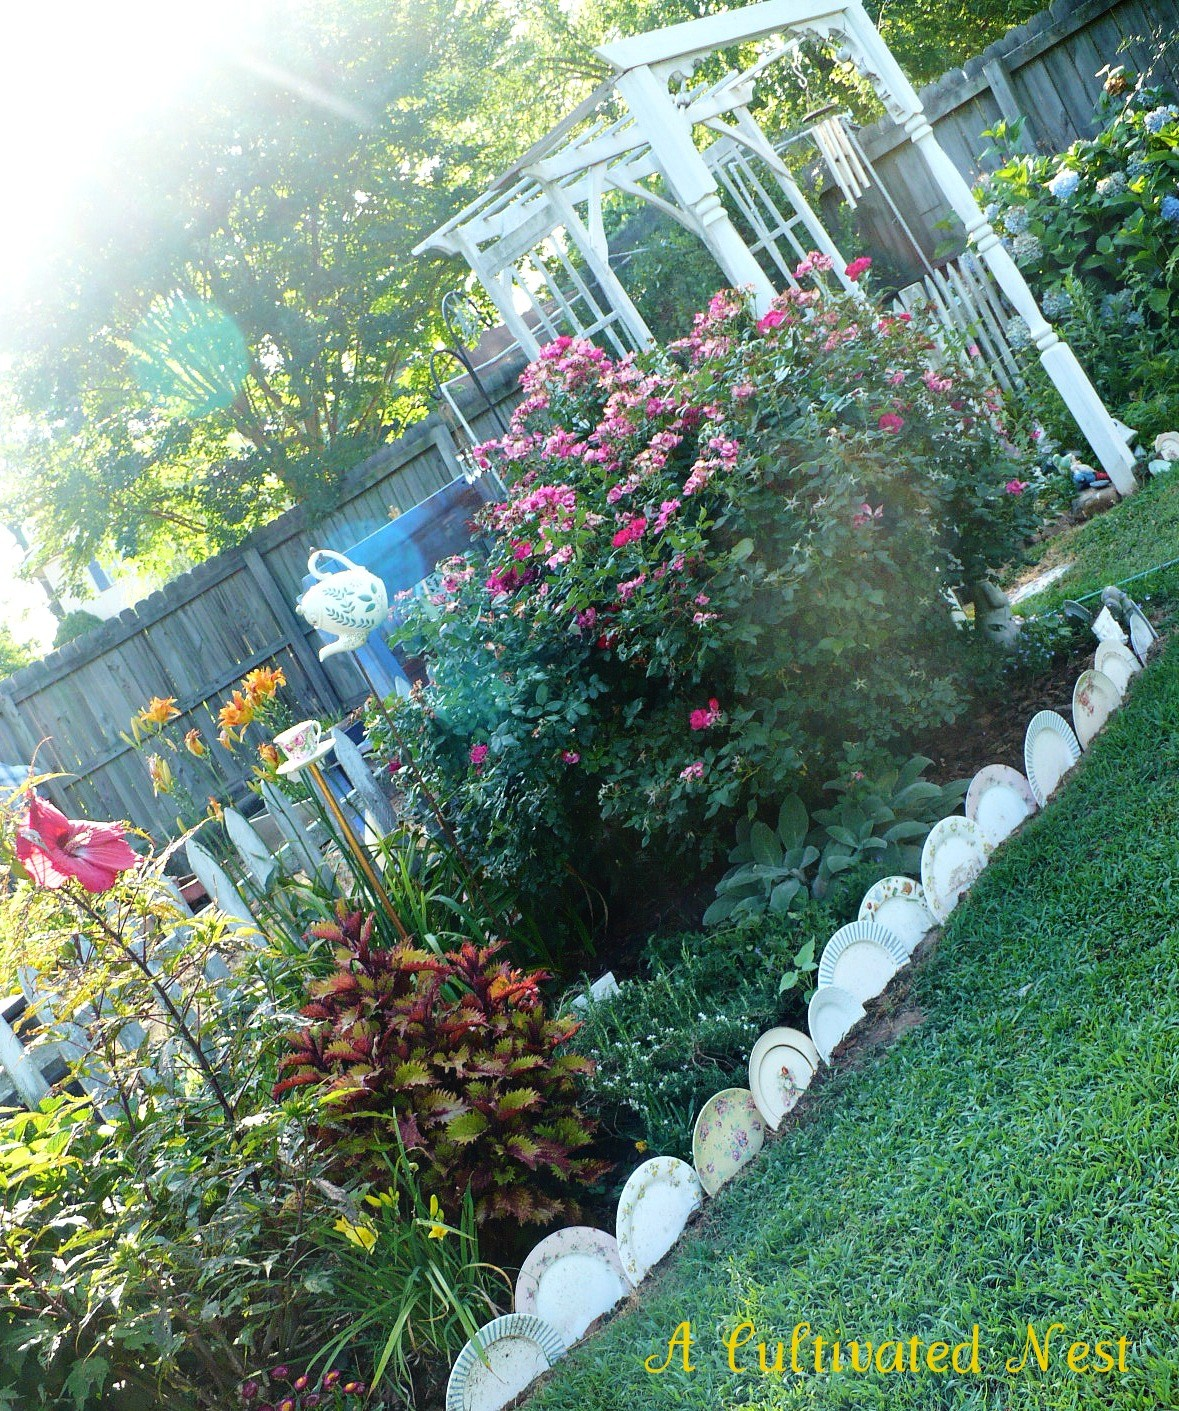 Garden Border Edging Ideas 25 garden bed borders edging ideas for vegetable and flower gardens Plates Edging Perennial Border